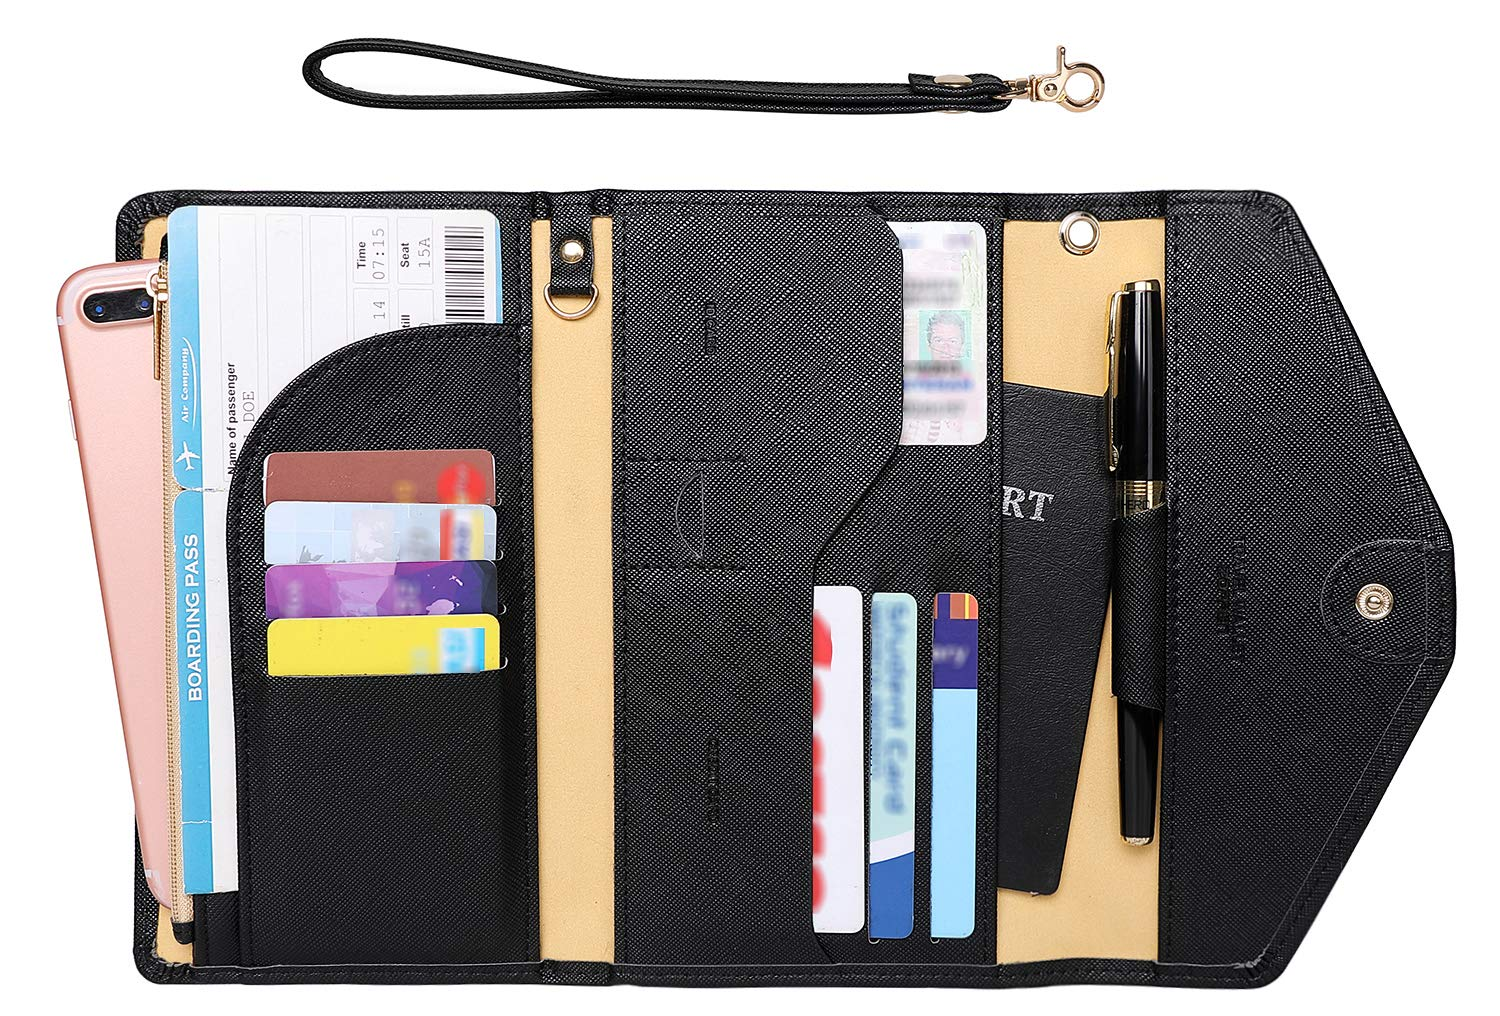 Zoppen Passport Holder Travel Wallet (Ver.5) for Women Rfid Blocking Multi-purpose Passport Cover Document Organizer Strap, Black by Zoppen